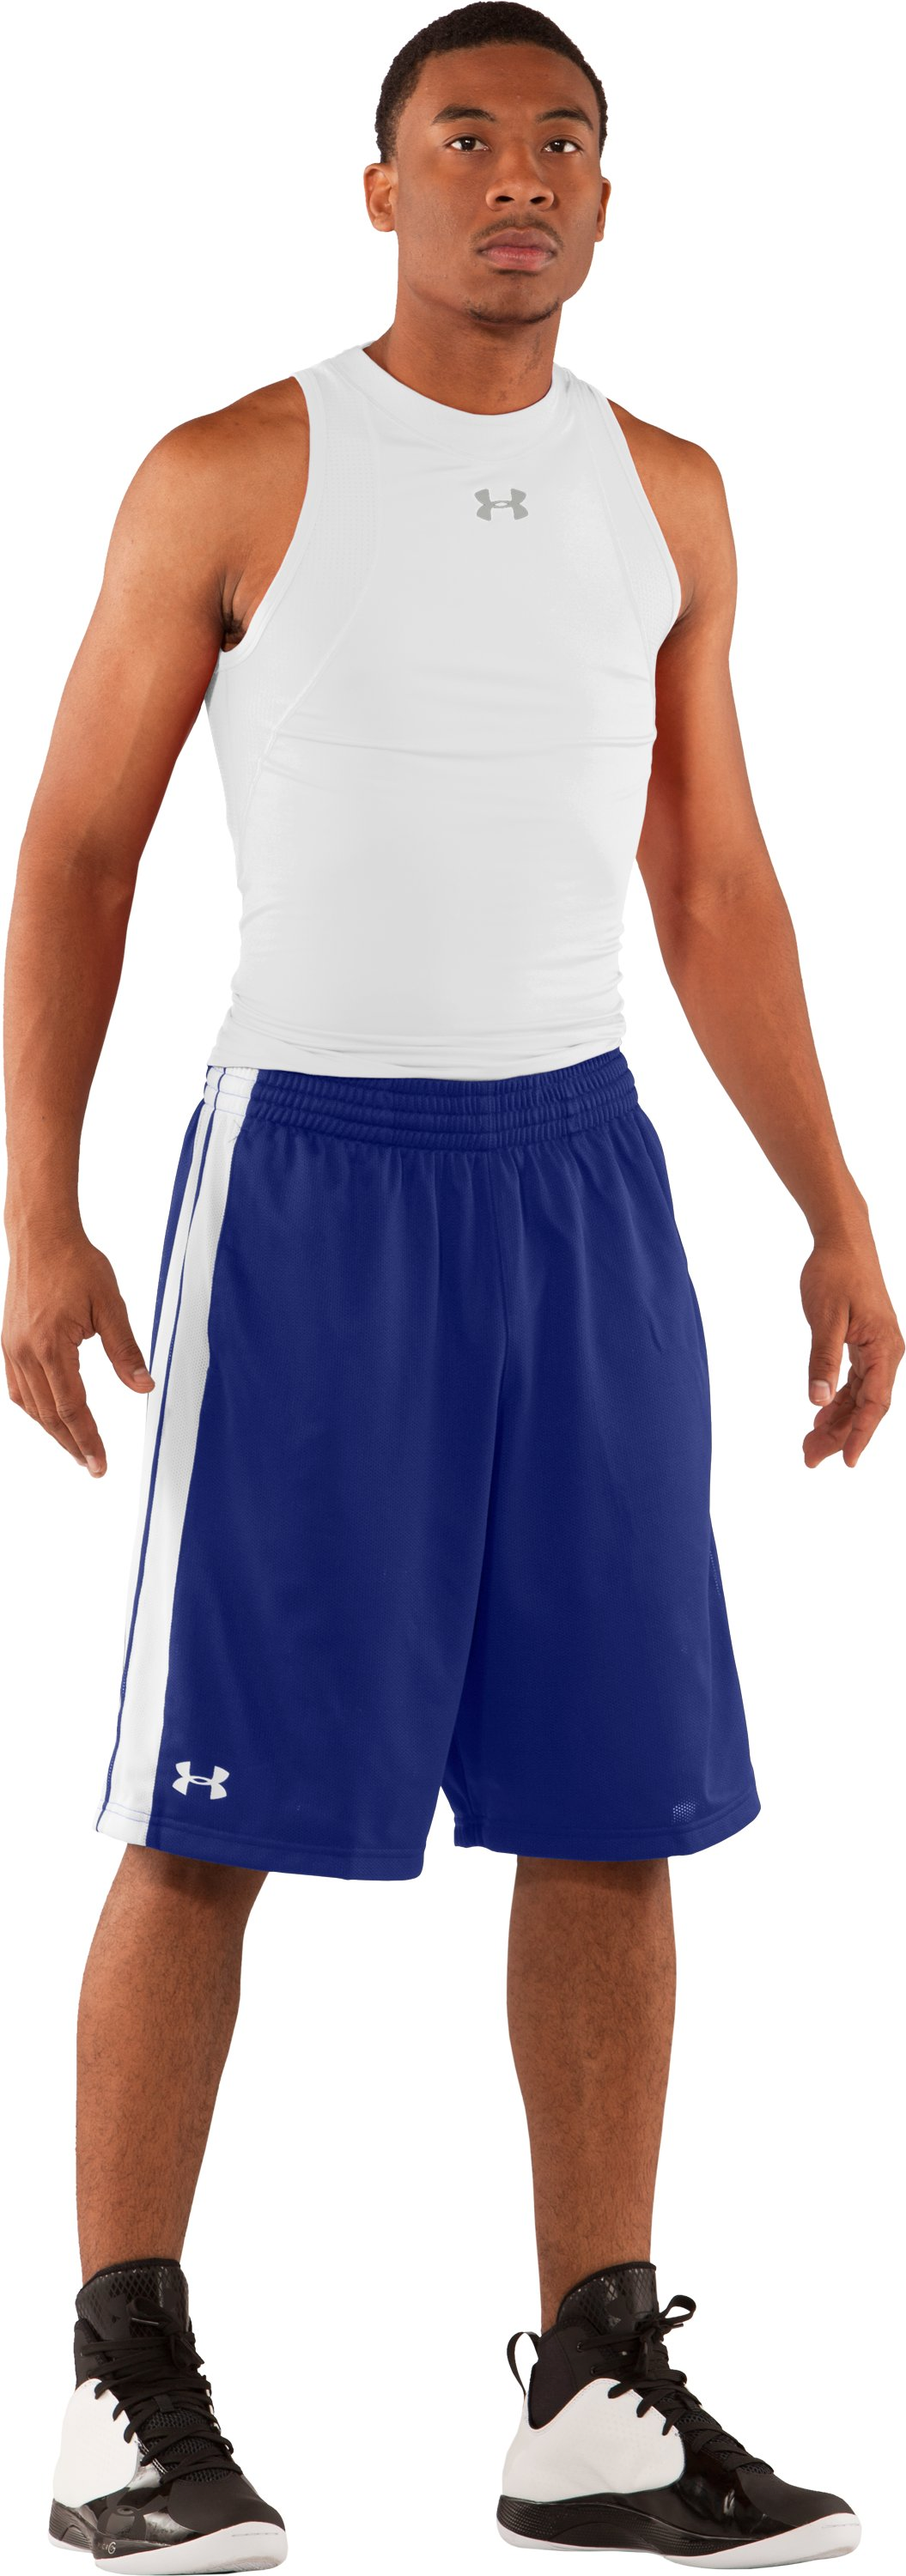 "Men's 10"" Basketball Practice Shorts, Royal, Front"